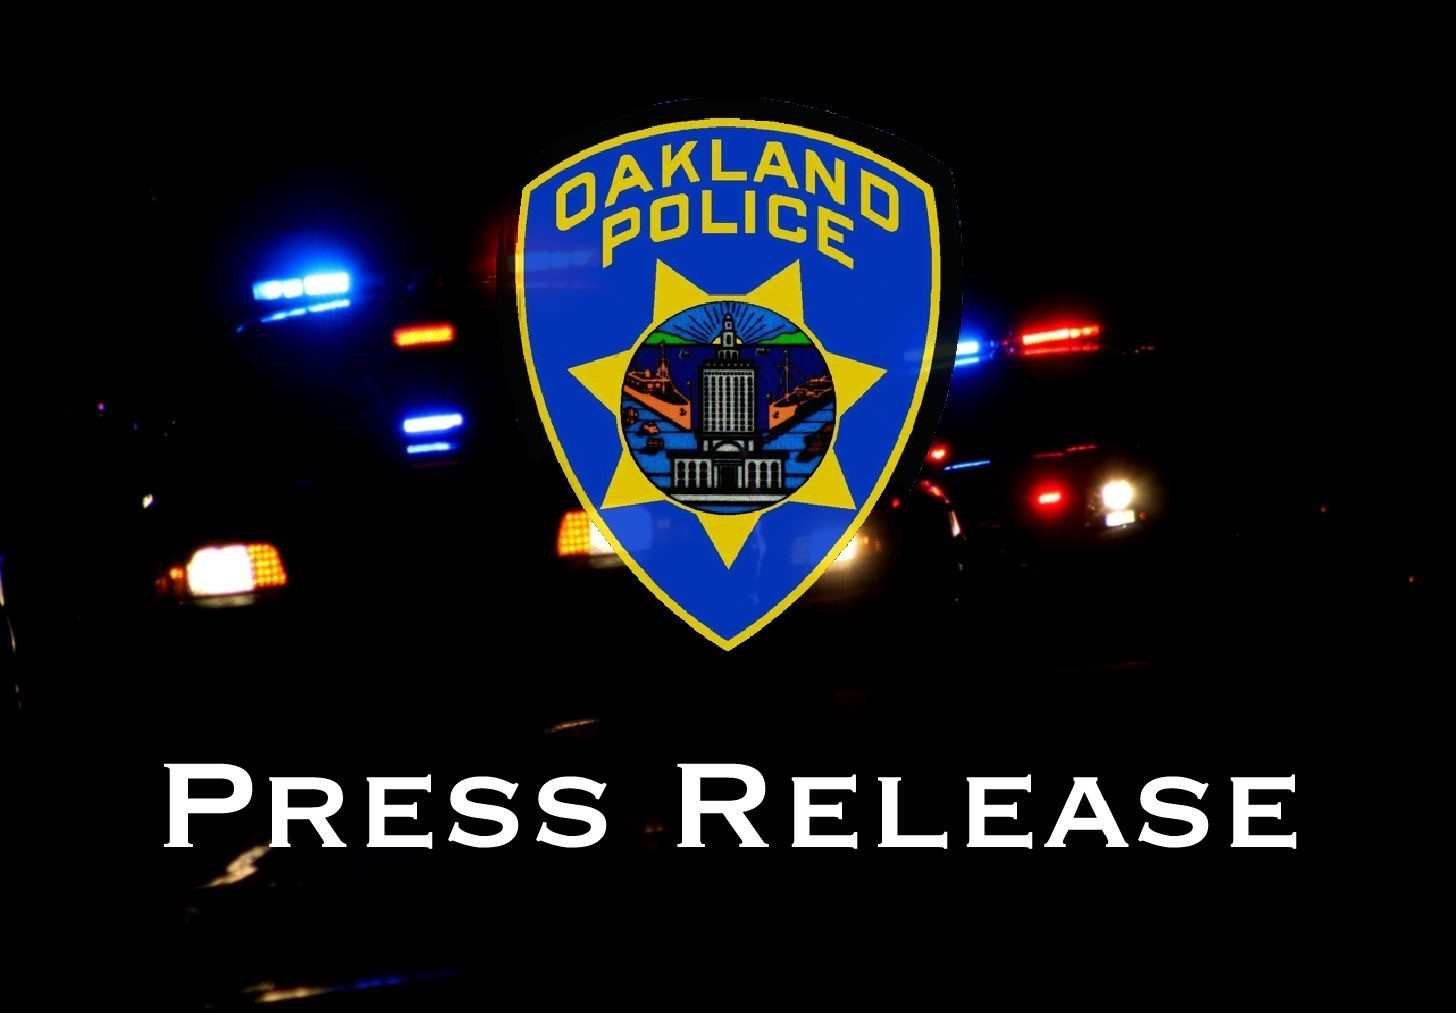 Oakland Police Press Release